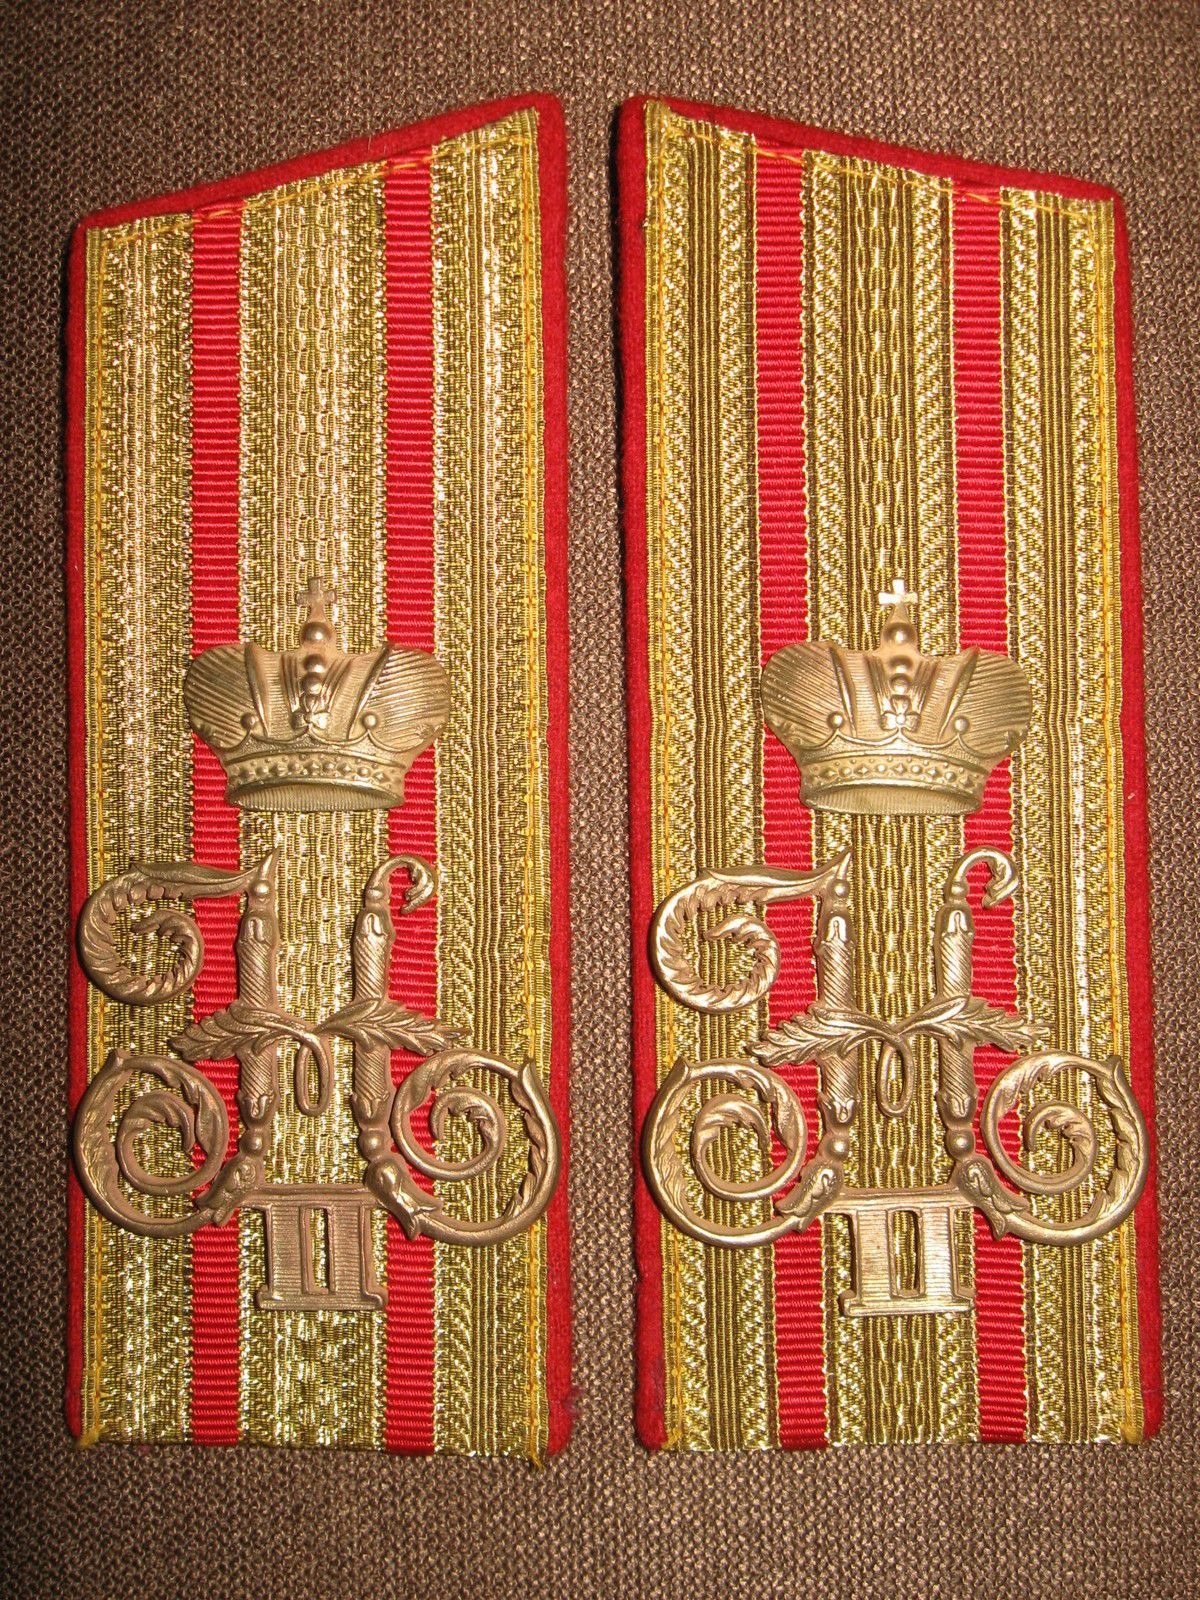 United States Army Cavalry Combat Spurs Order of the Spur Gold Plated w//Straps